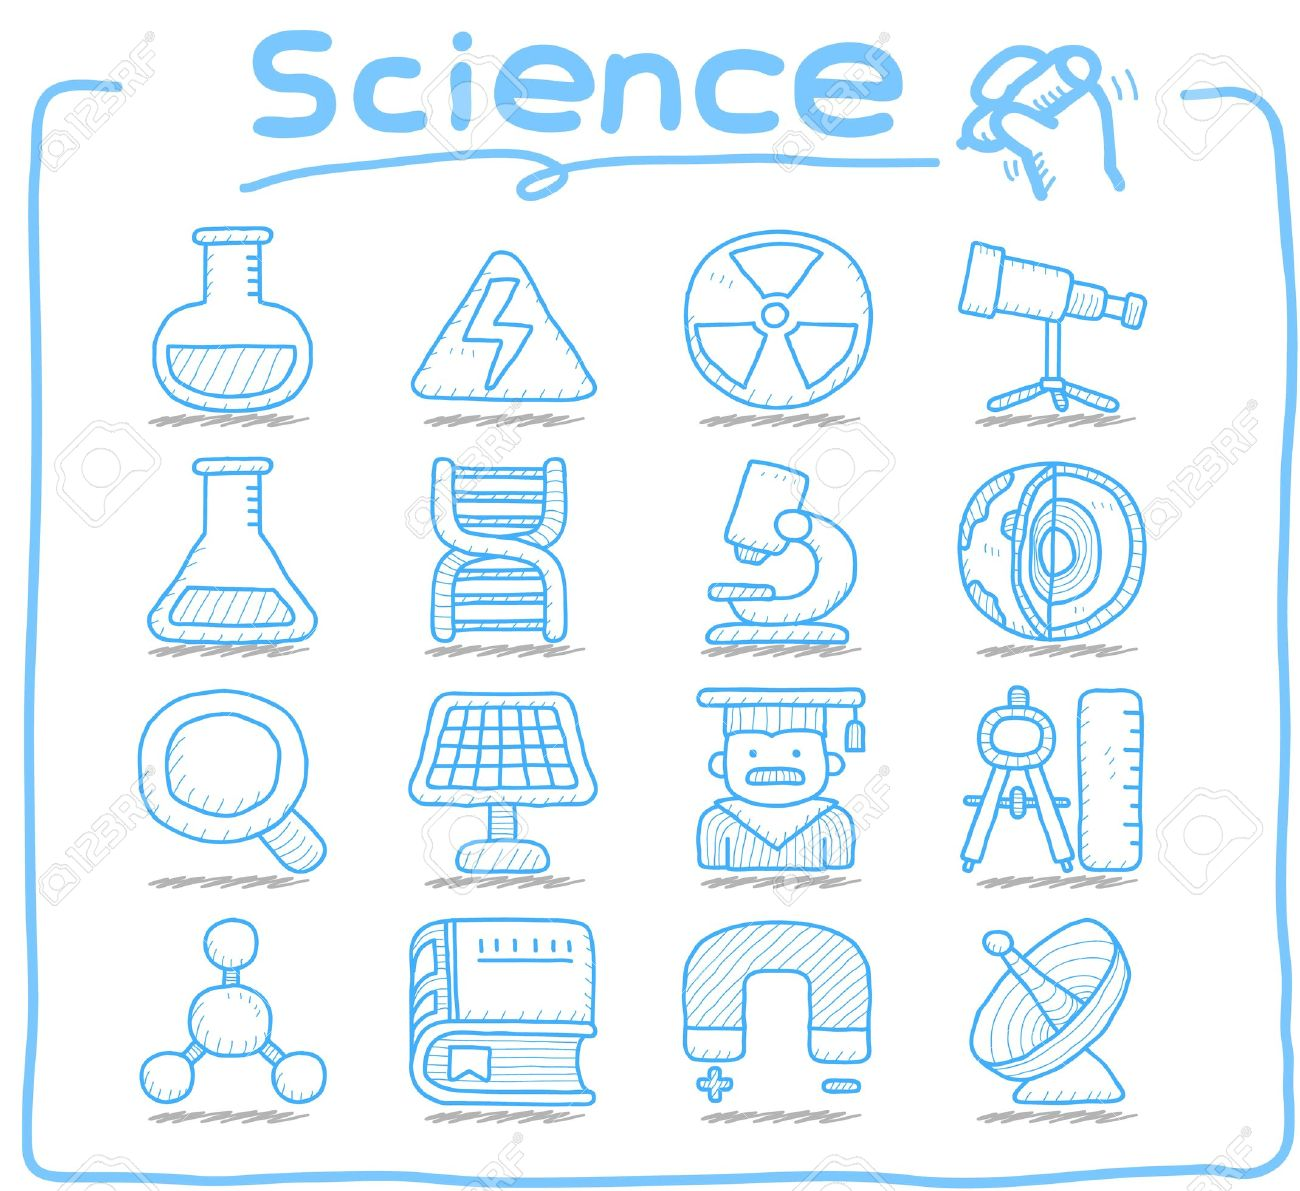 Pure Series   Hand drawn Science icon set Stock Vector - 12633557